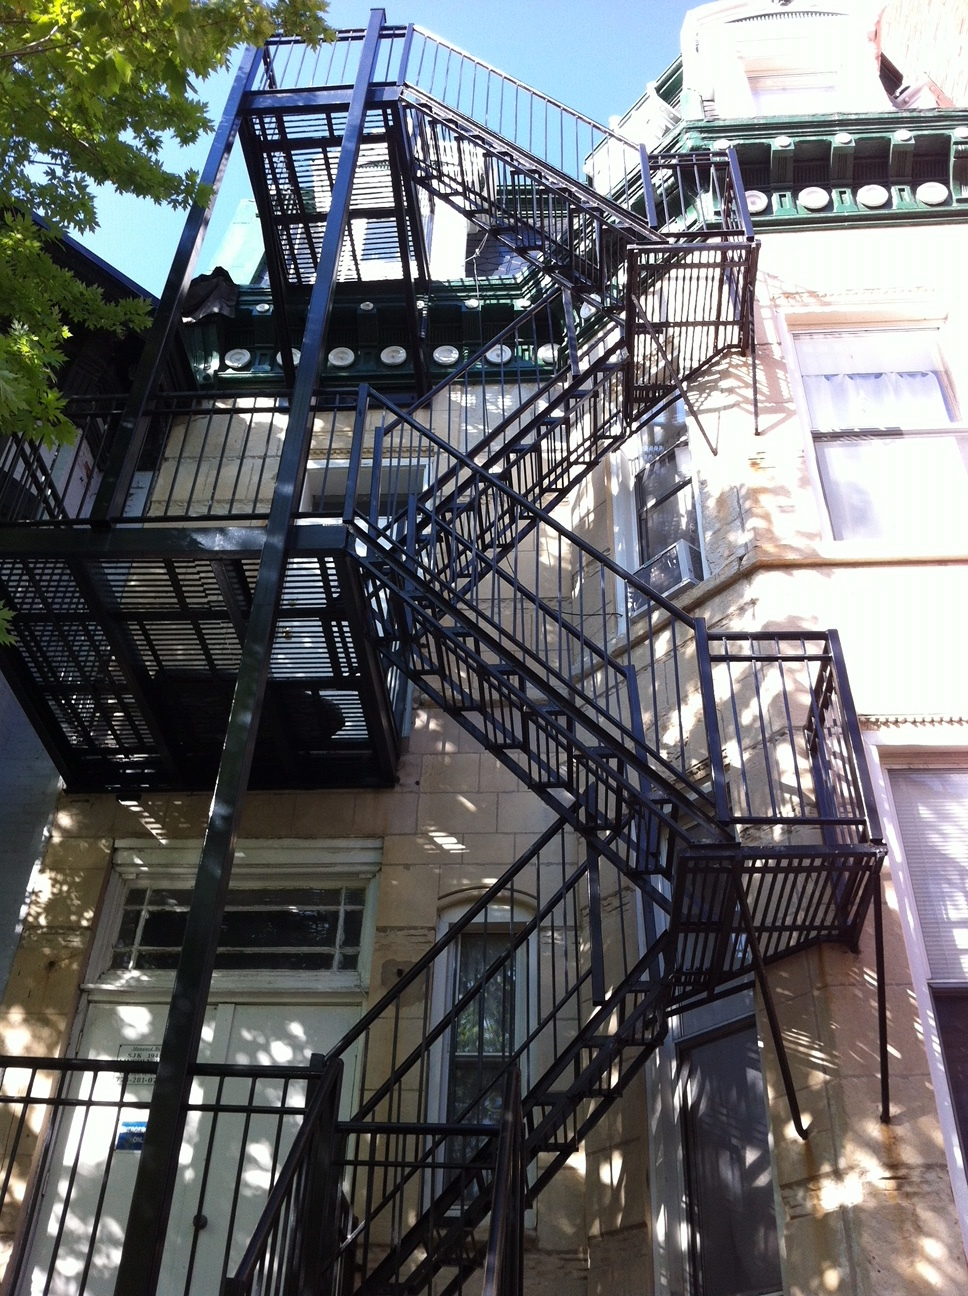 Backstairs, Montreal